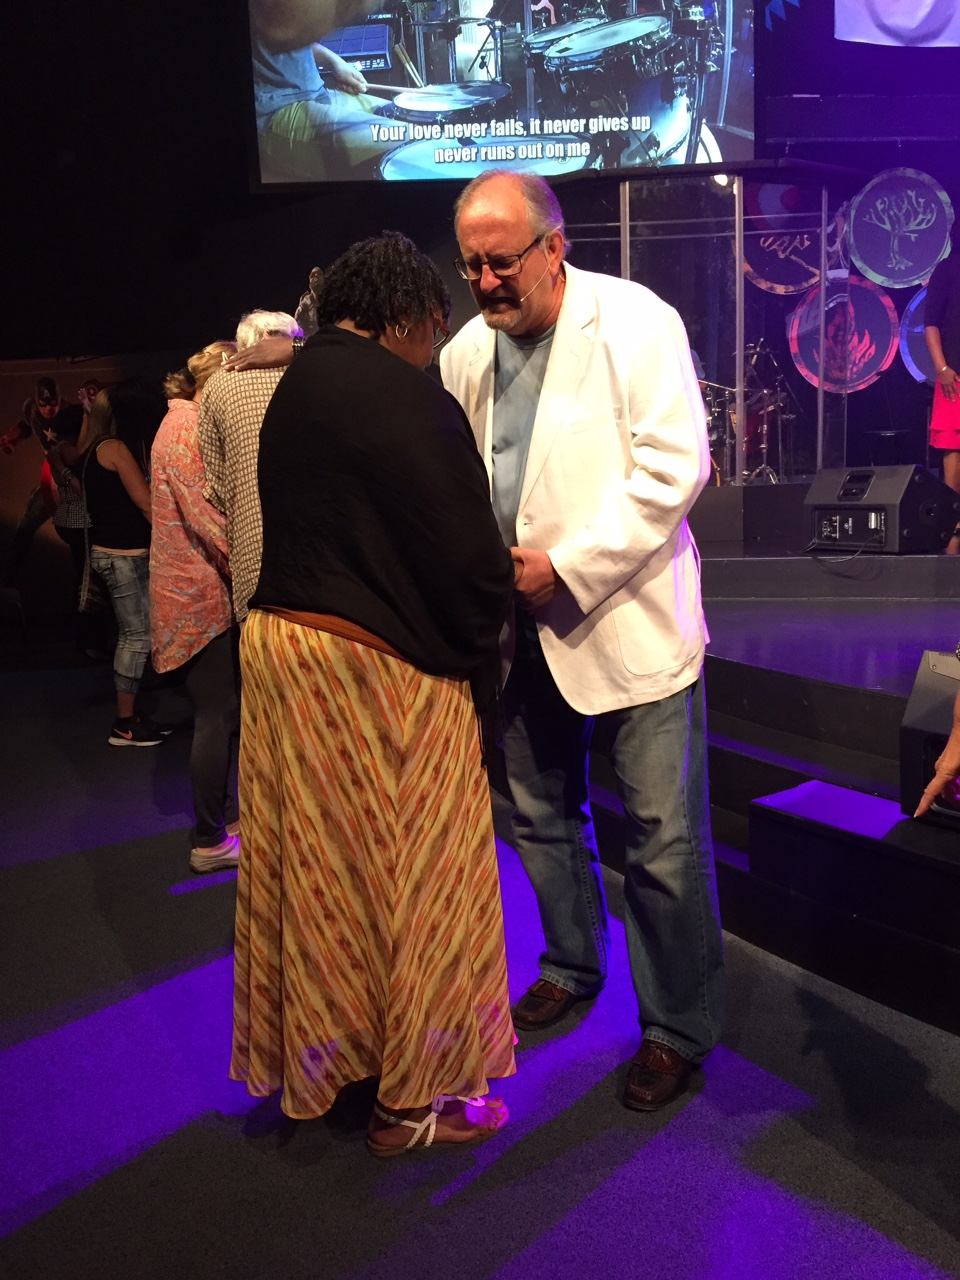 One of my favorite times in any service is when we get to pray with CLC'ers - after all, that's our first calling!